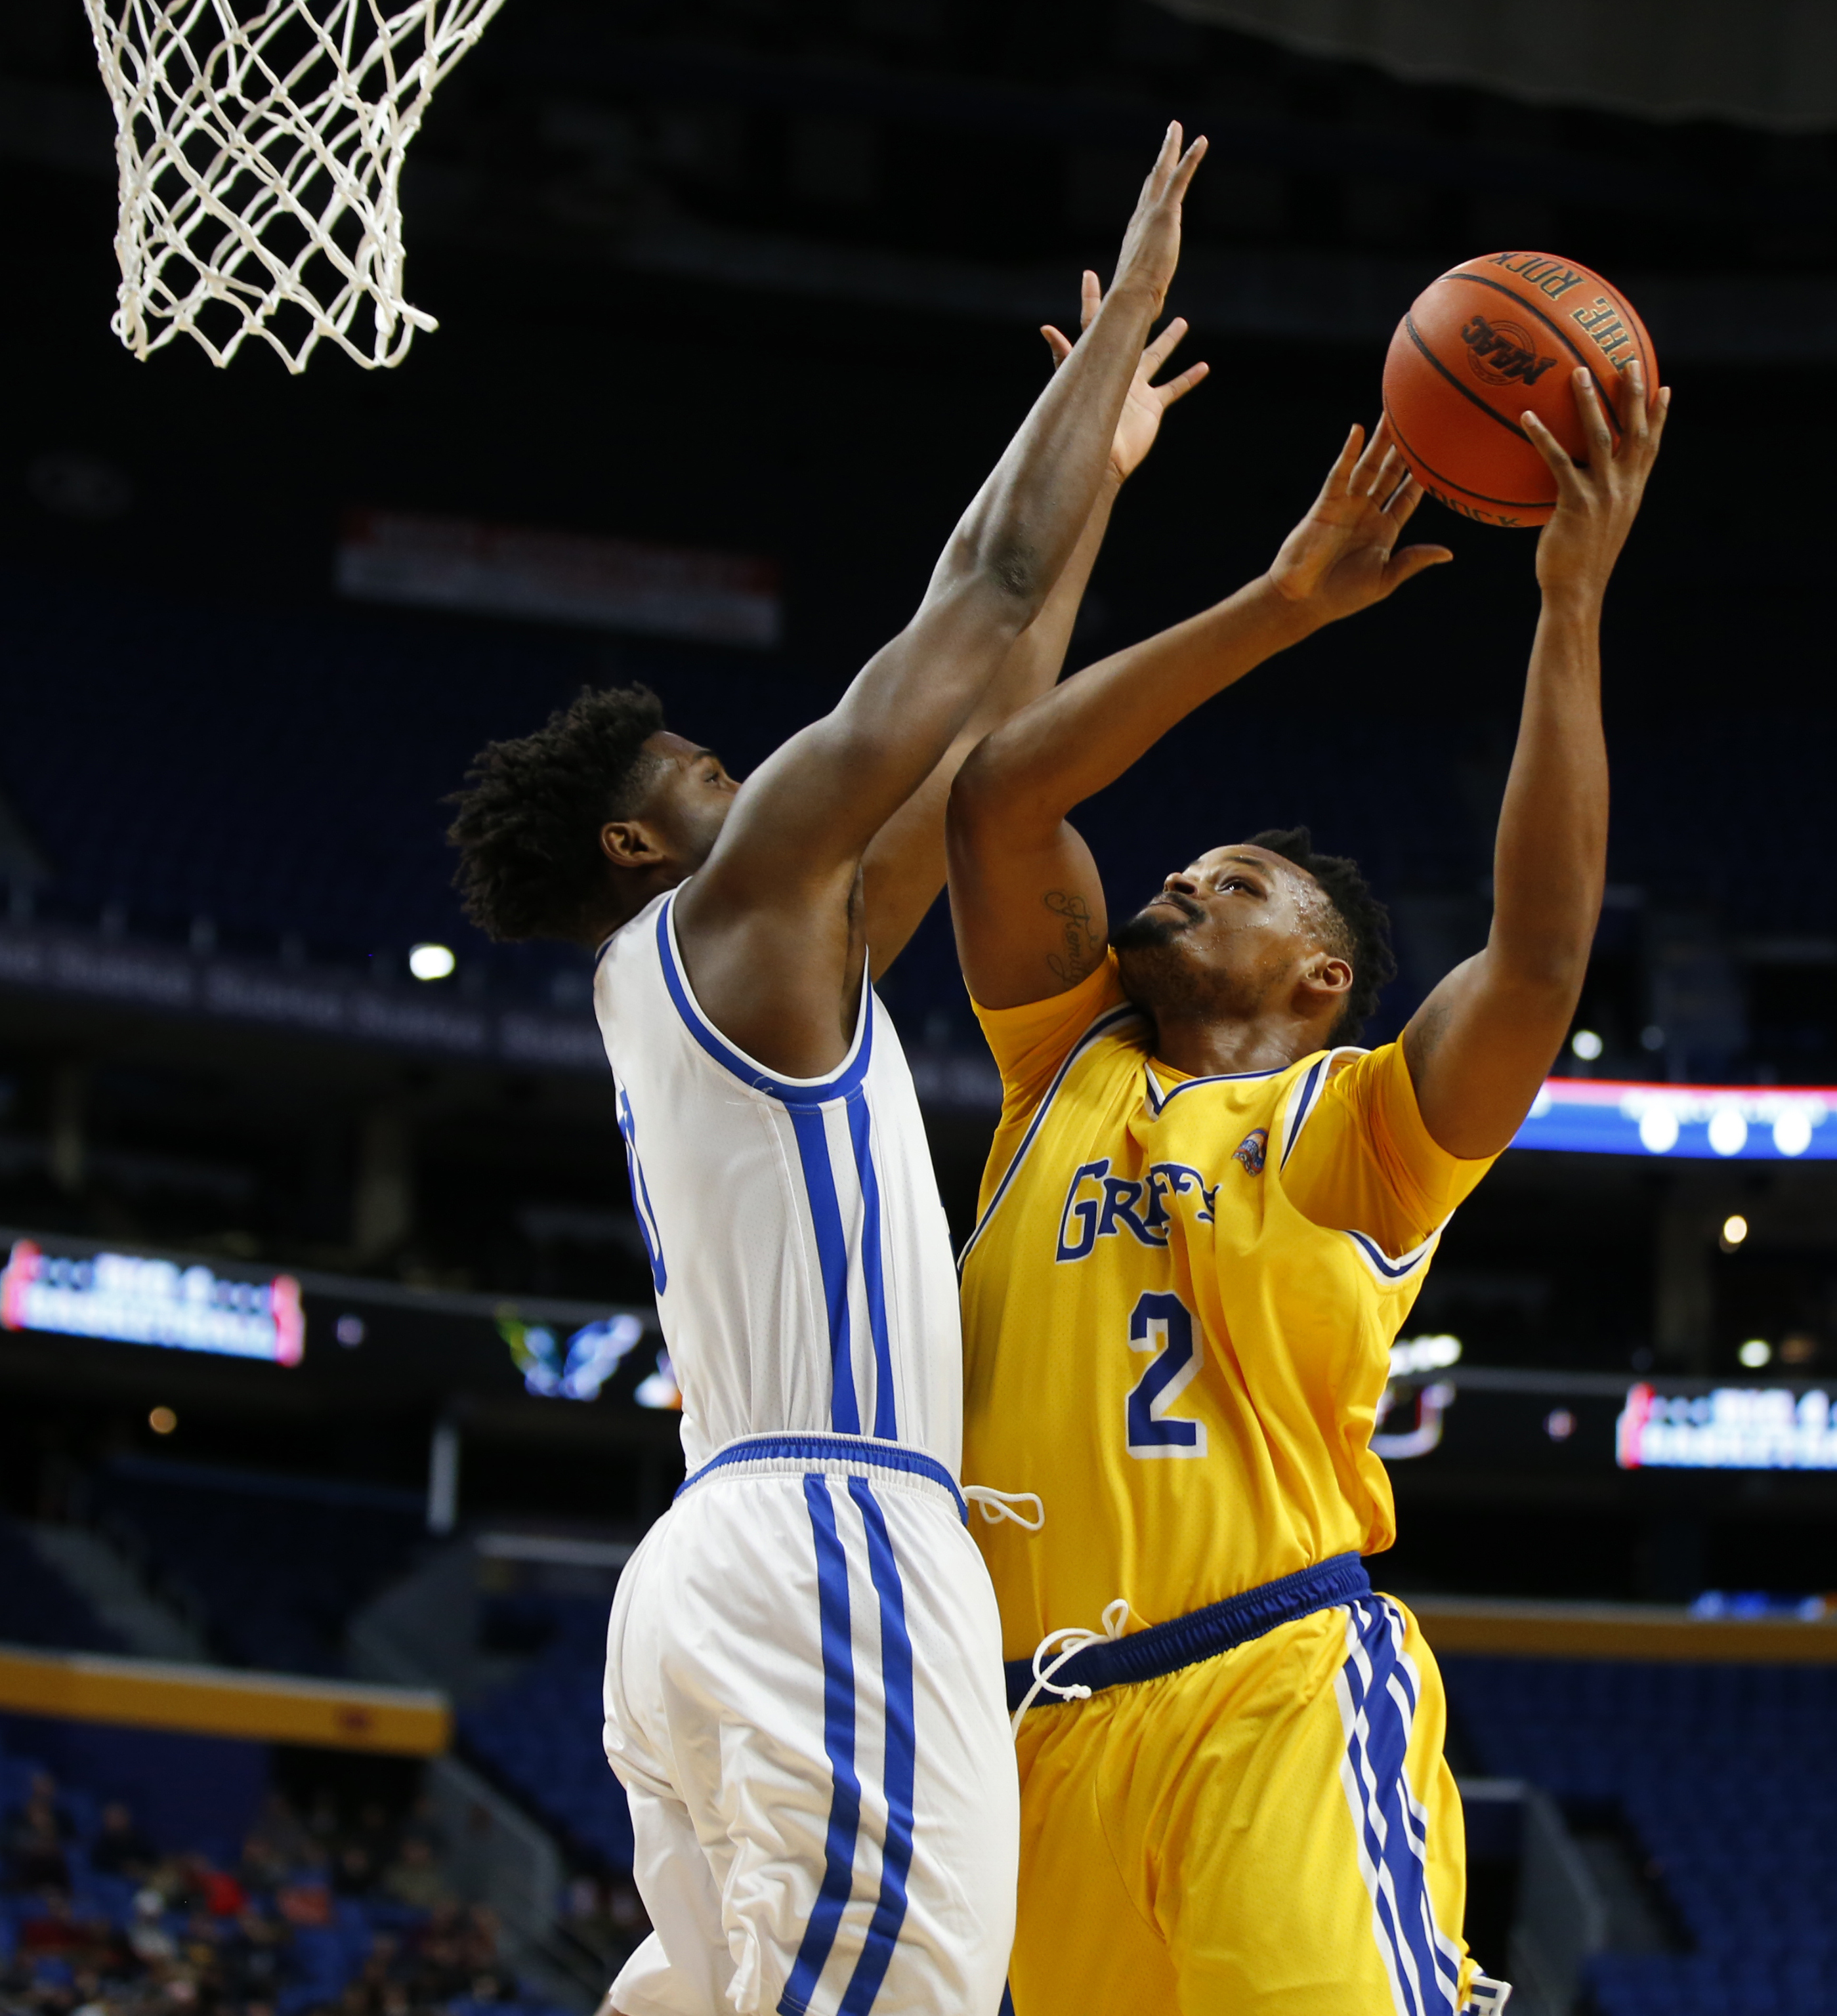 Canisius Jermaine Crumpton drives to the basket against the University at Buffalo during first half action at the Big 4 classic at the Key Bank Center Saturday (Harry Scull Jr./Buffalo News)